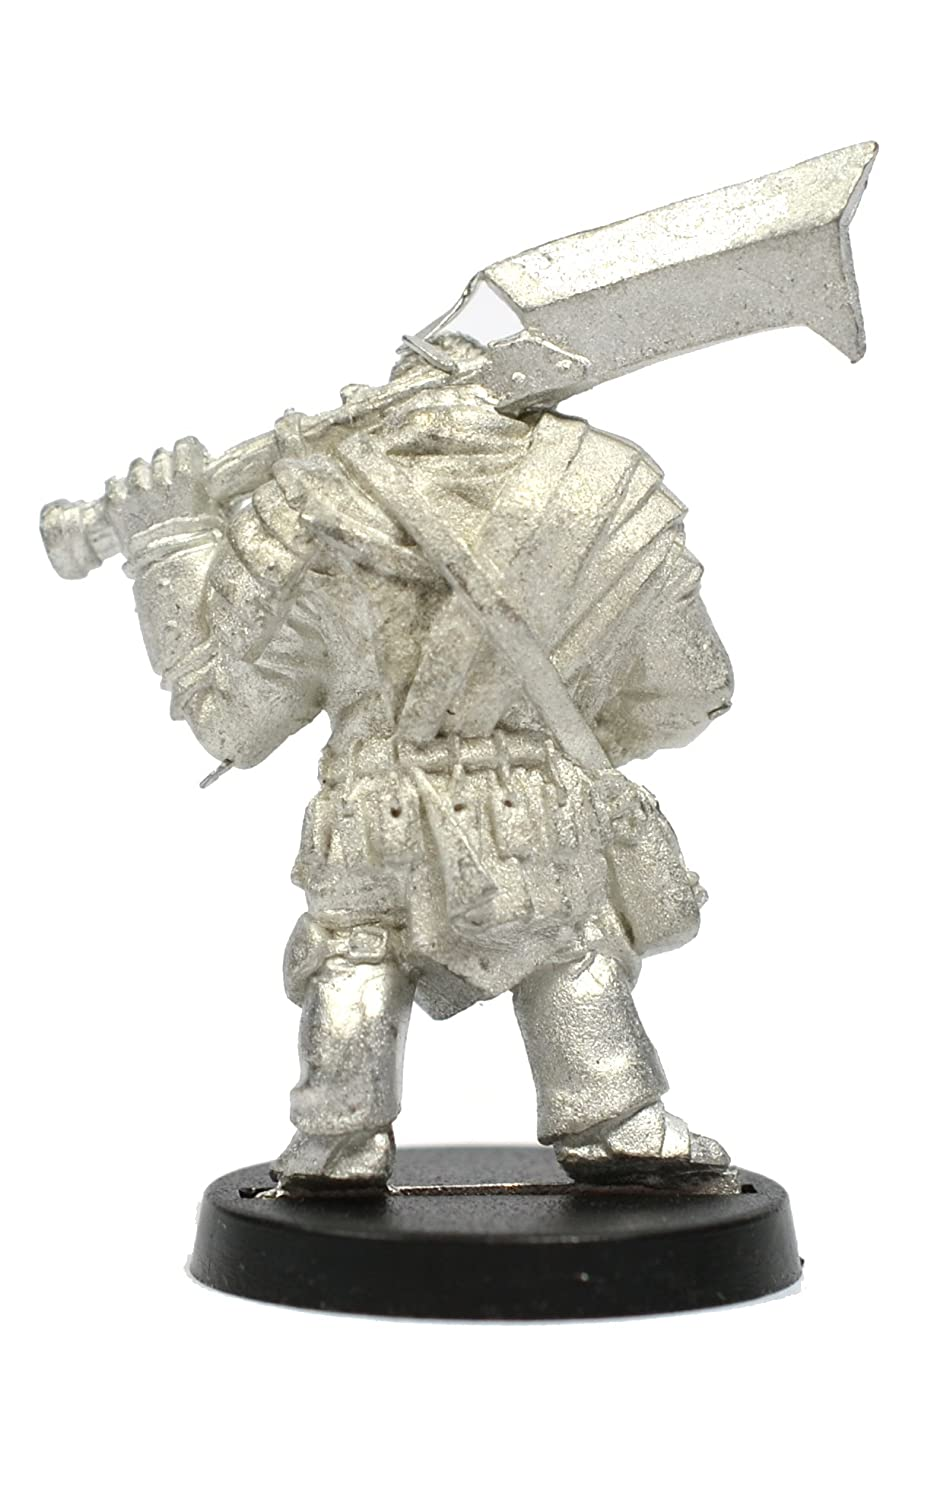 for 28mm Scale Table Top War Games Made in USA Stonehaven Half-Orc Fighter Miniature Figure